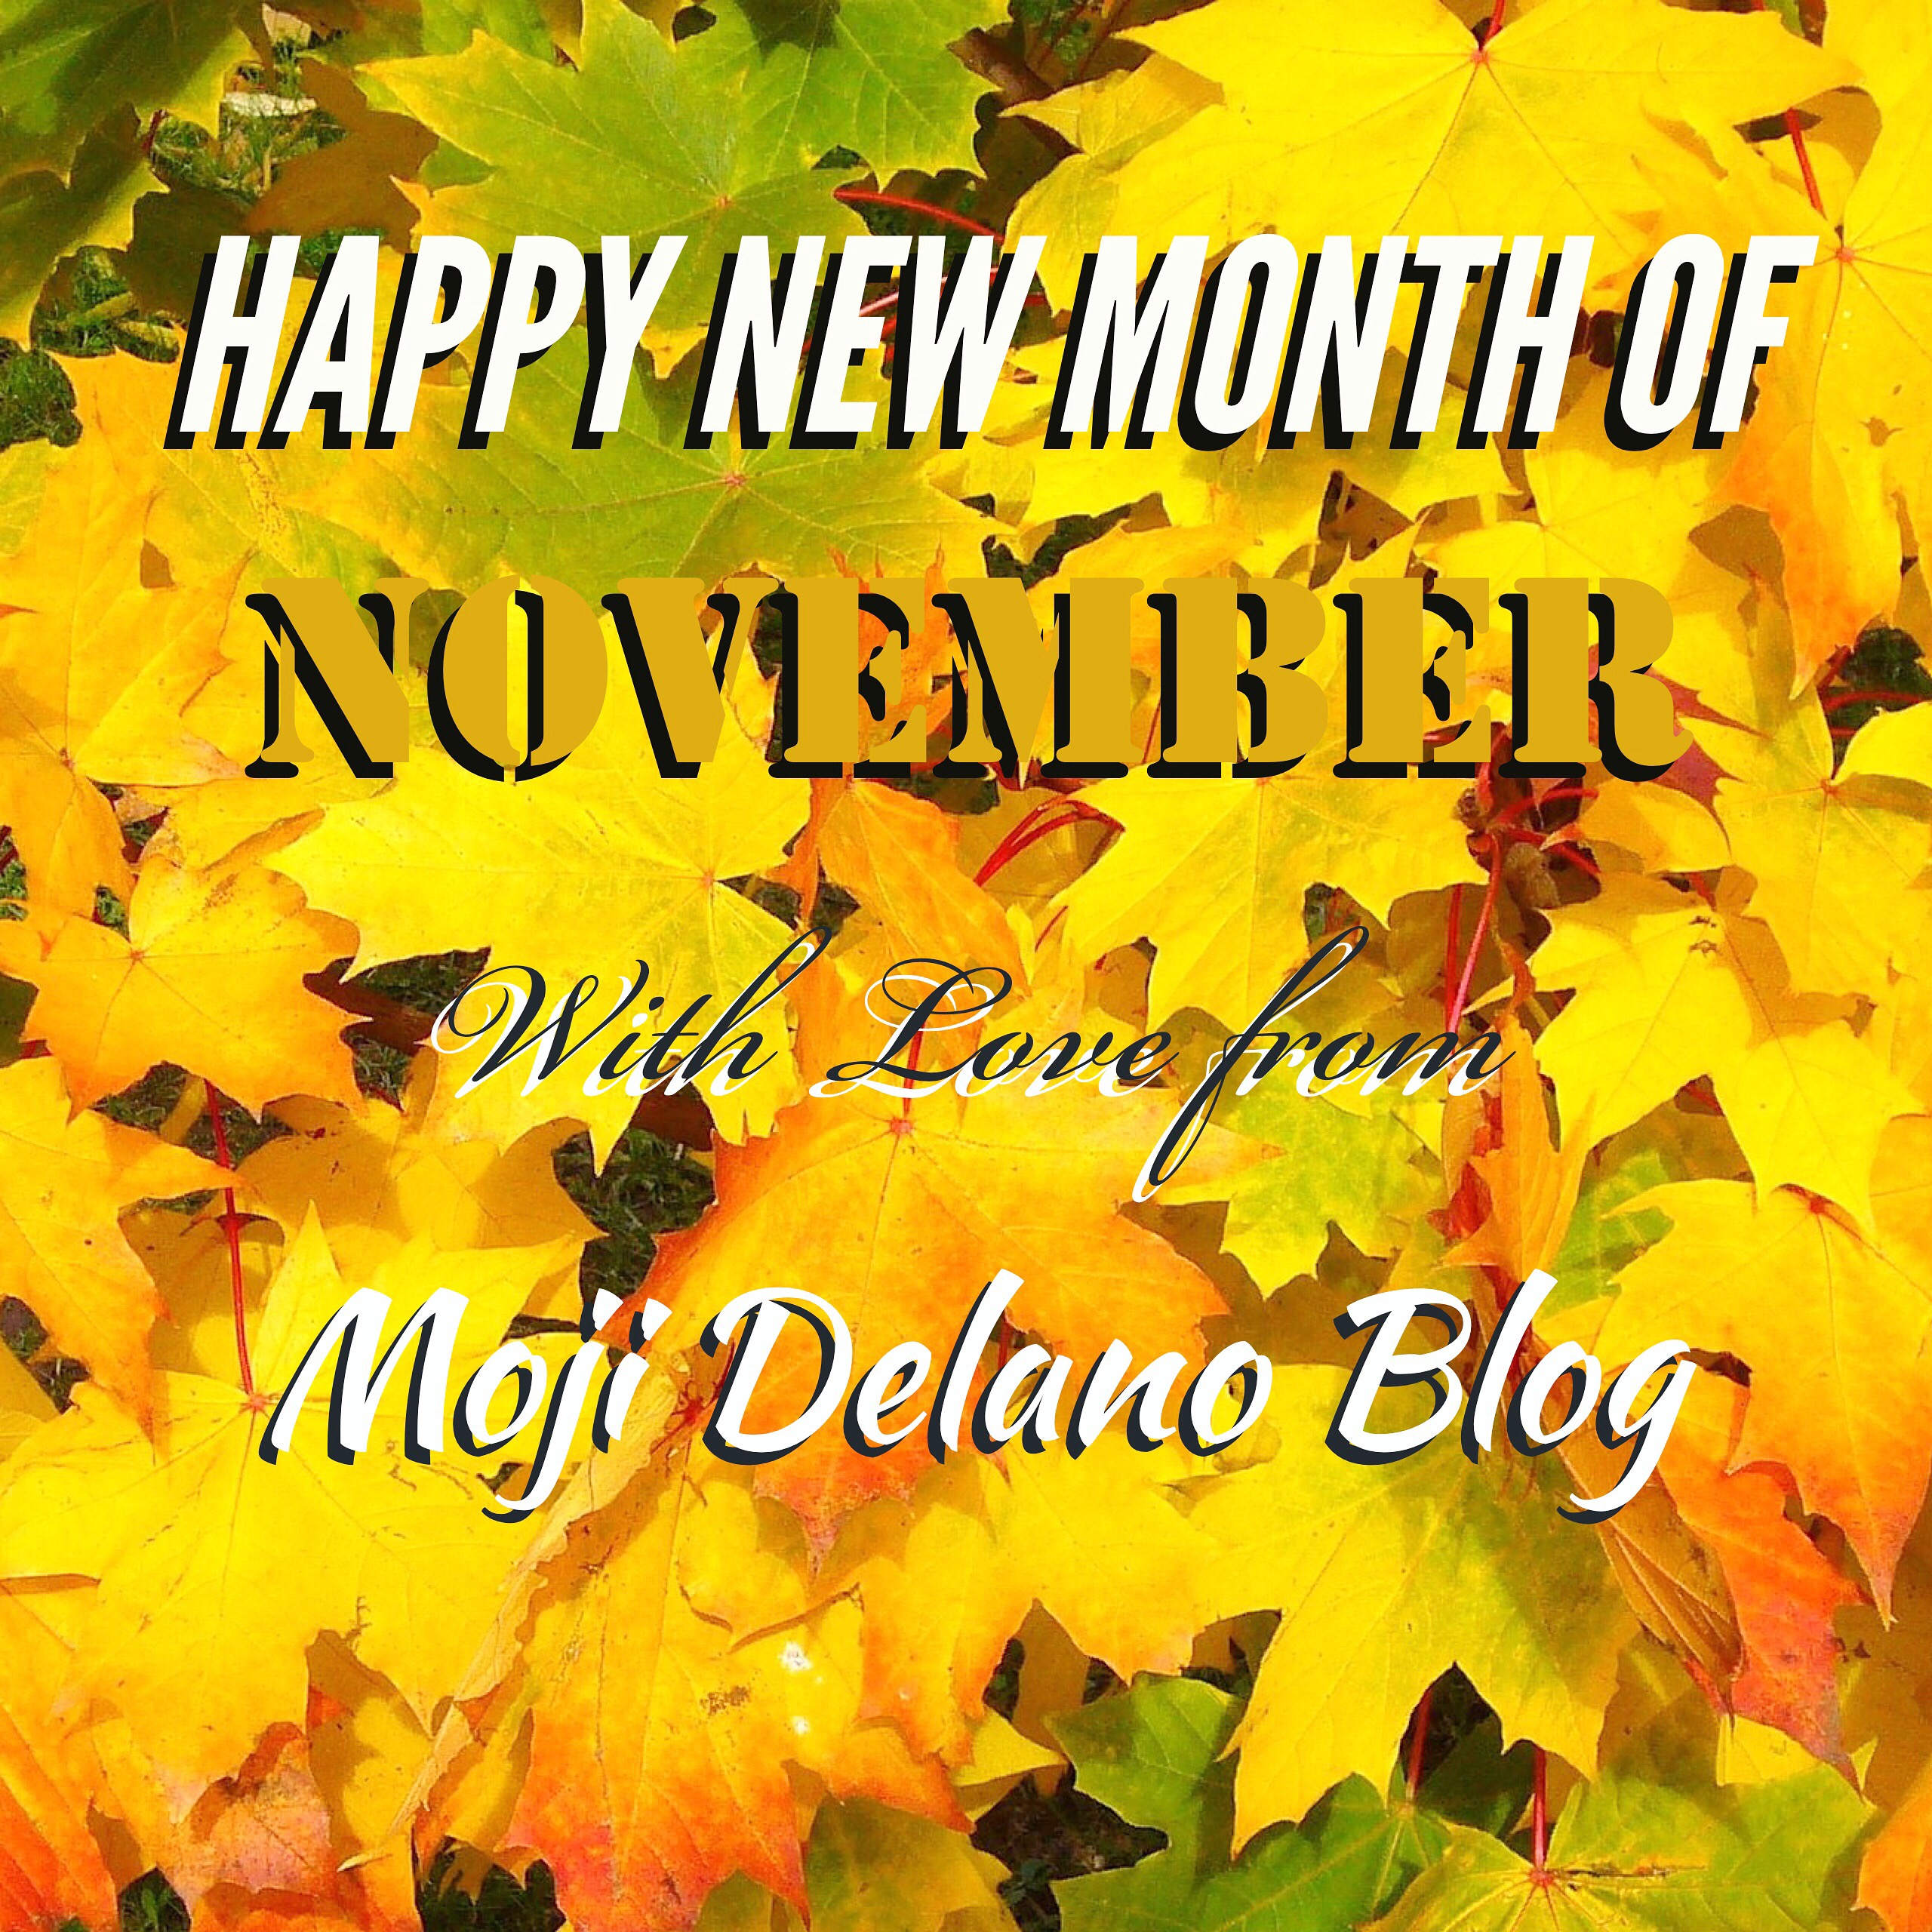 Happy November Everyone!!!